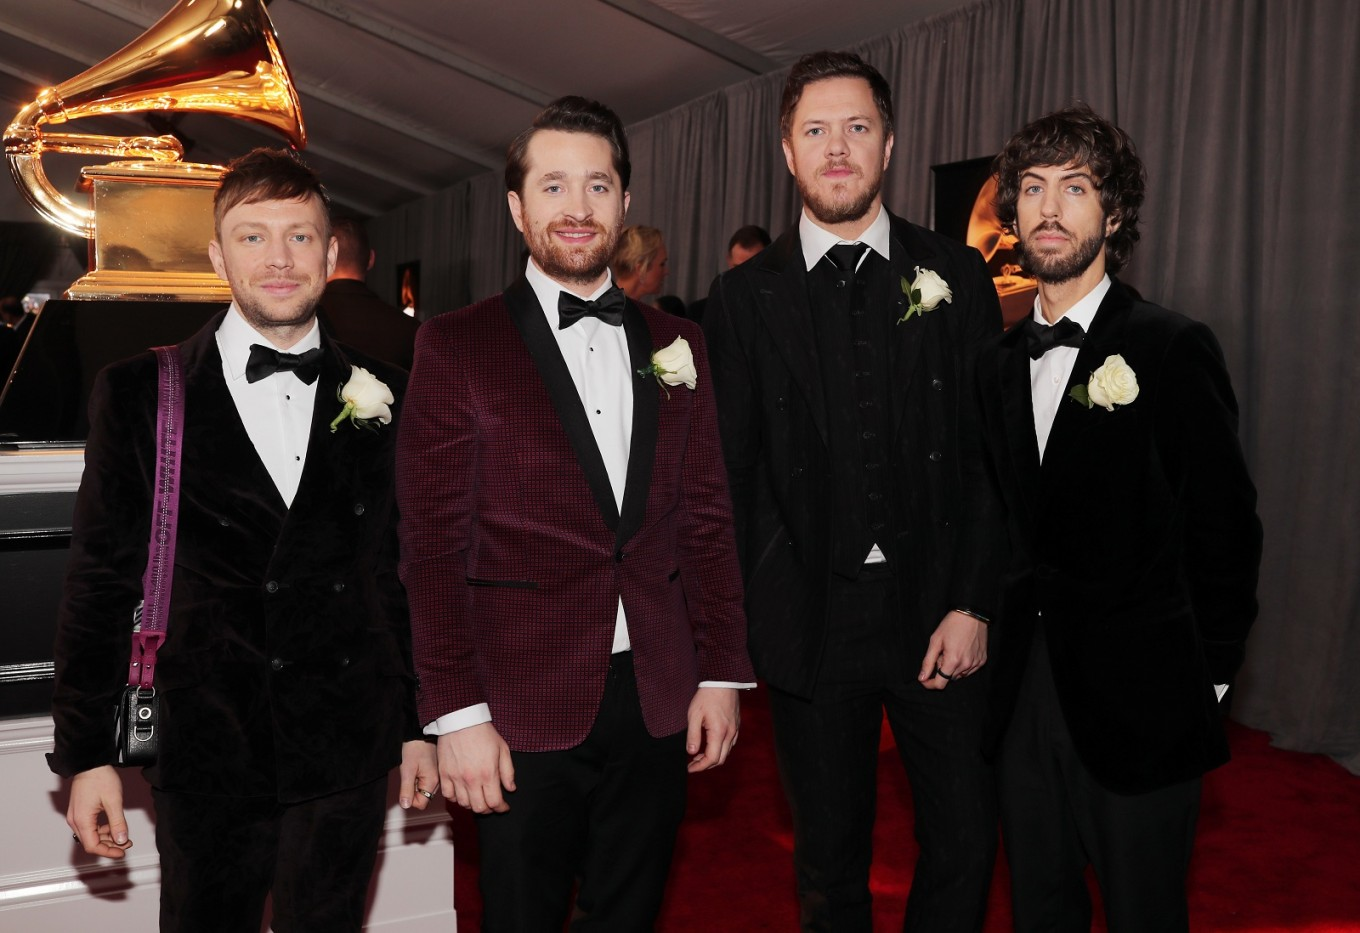 (L-R) Recording artist Ben McKee, Daniel Platzman, Dan Reynolds, and Wayne Sermon of musical group Imagine Dragons attend the 60th Annual Grammy Awards at Madison Square Garden on January 28, 2018 in New York City.